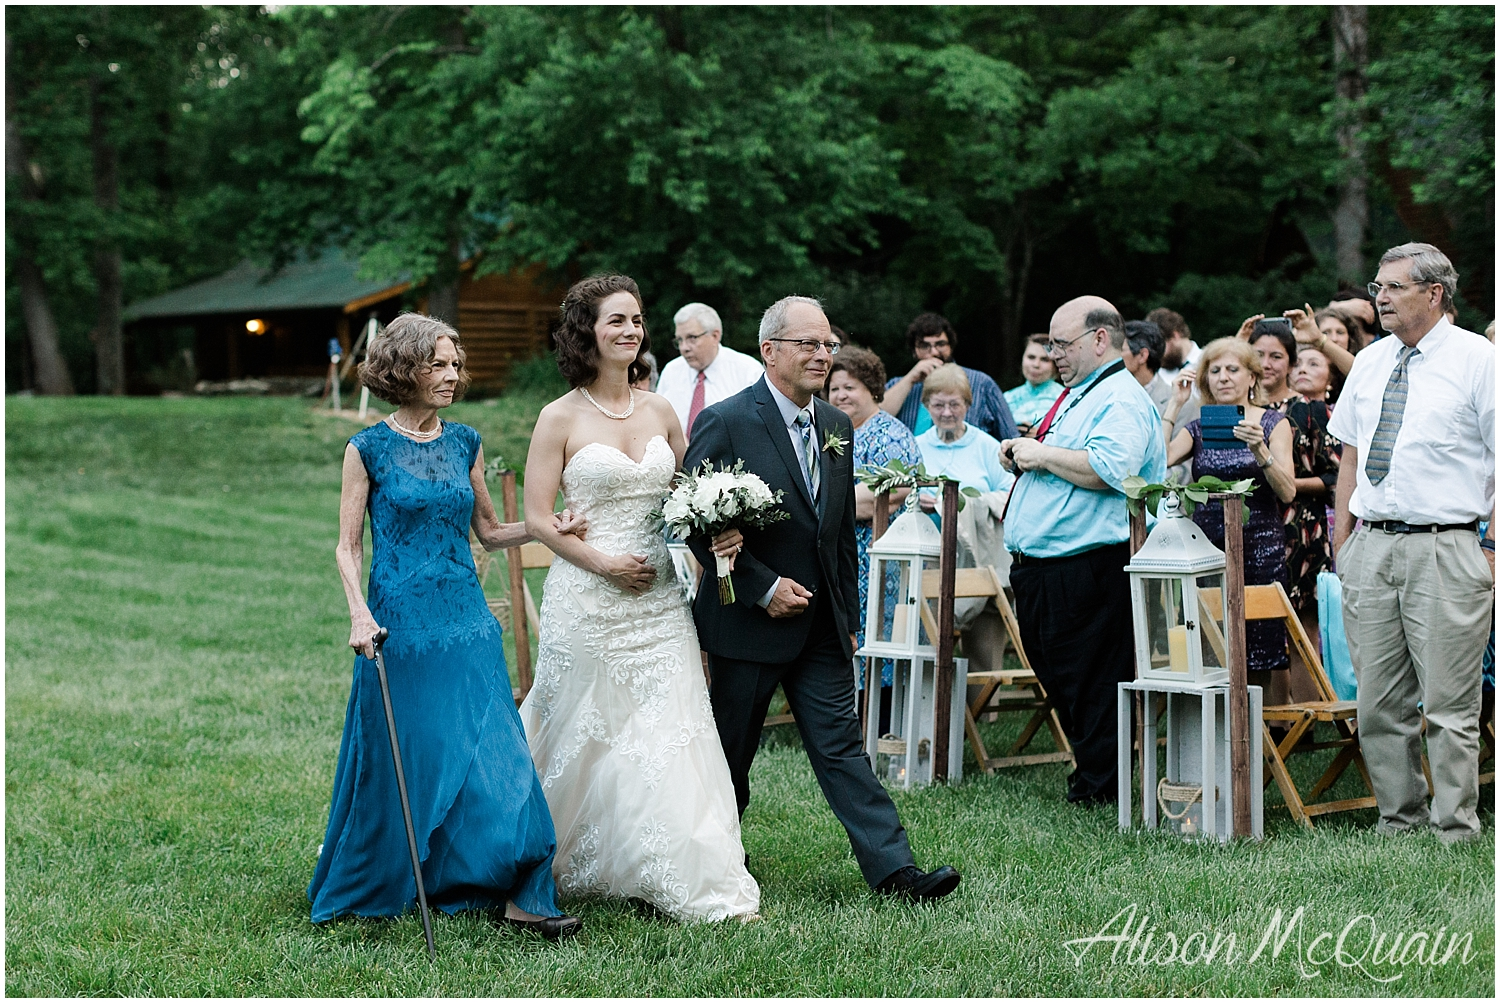 2018-05-23_0053LandC_wedding_dancingbearlodge_townsend_tn_amp.jpg